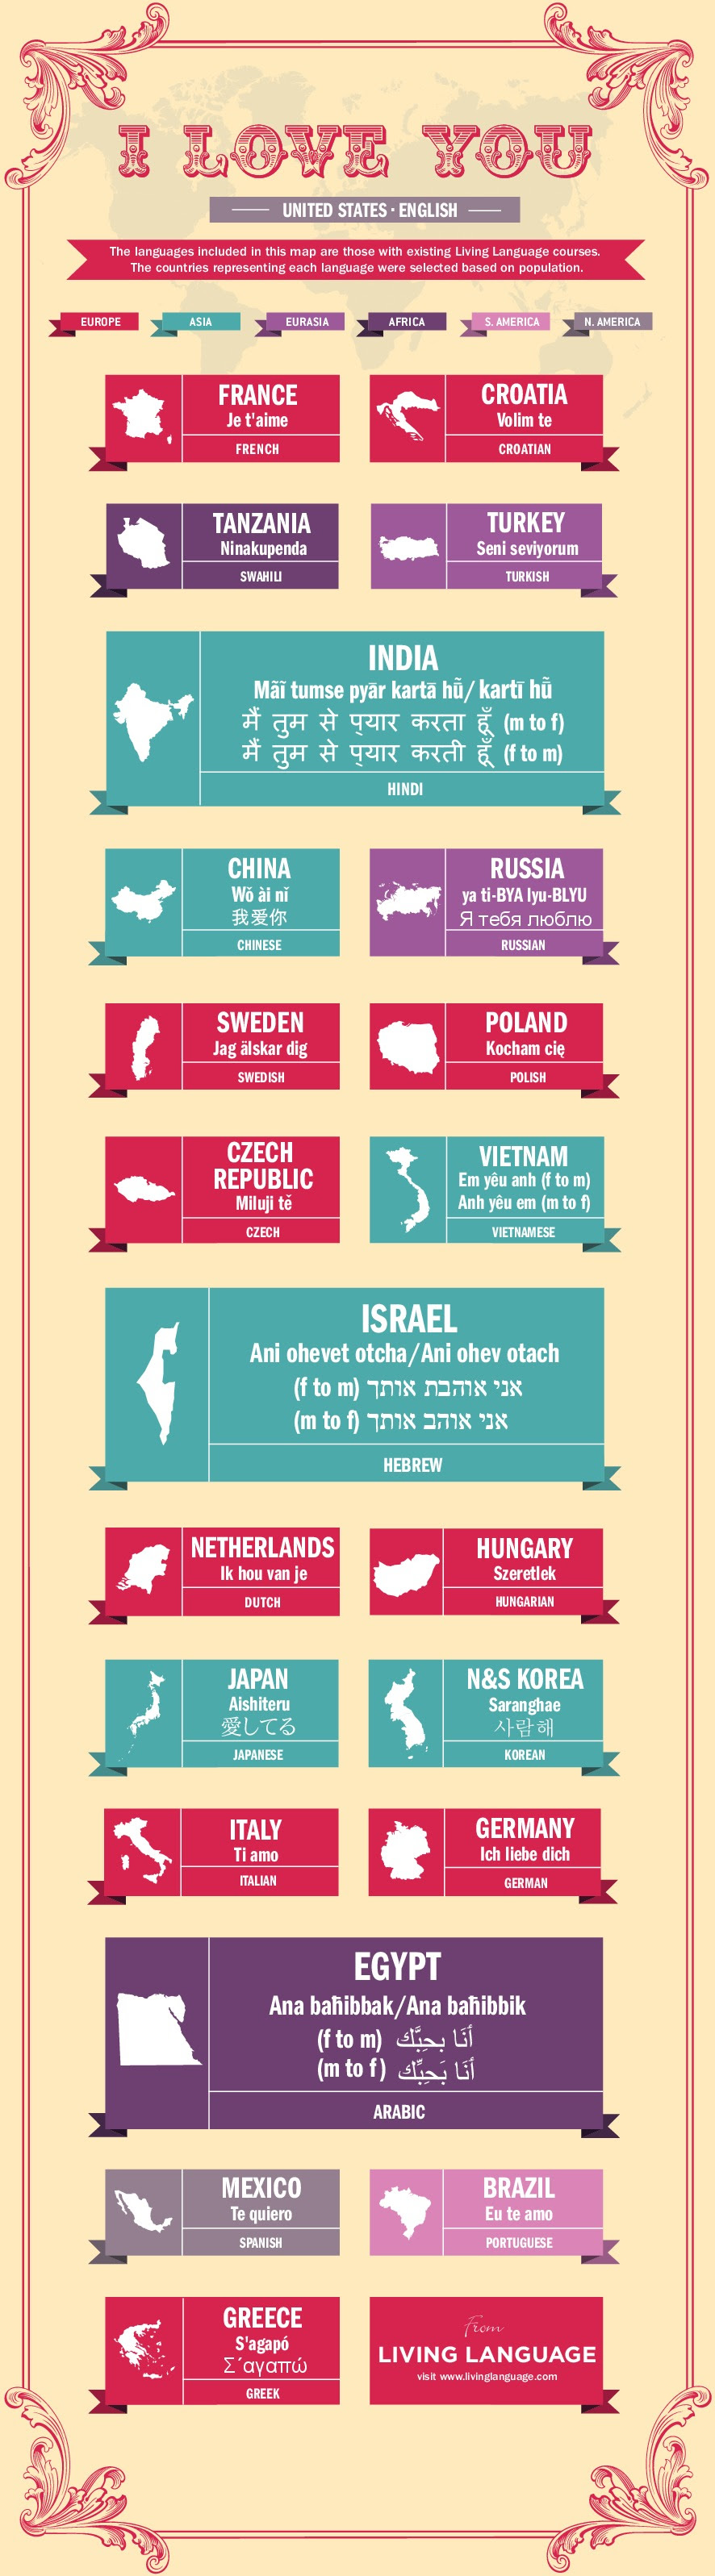 Infographic: How to Say I Love You in Different Languages #infographic